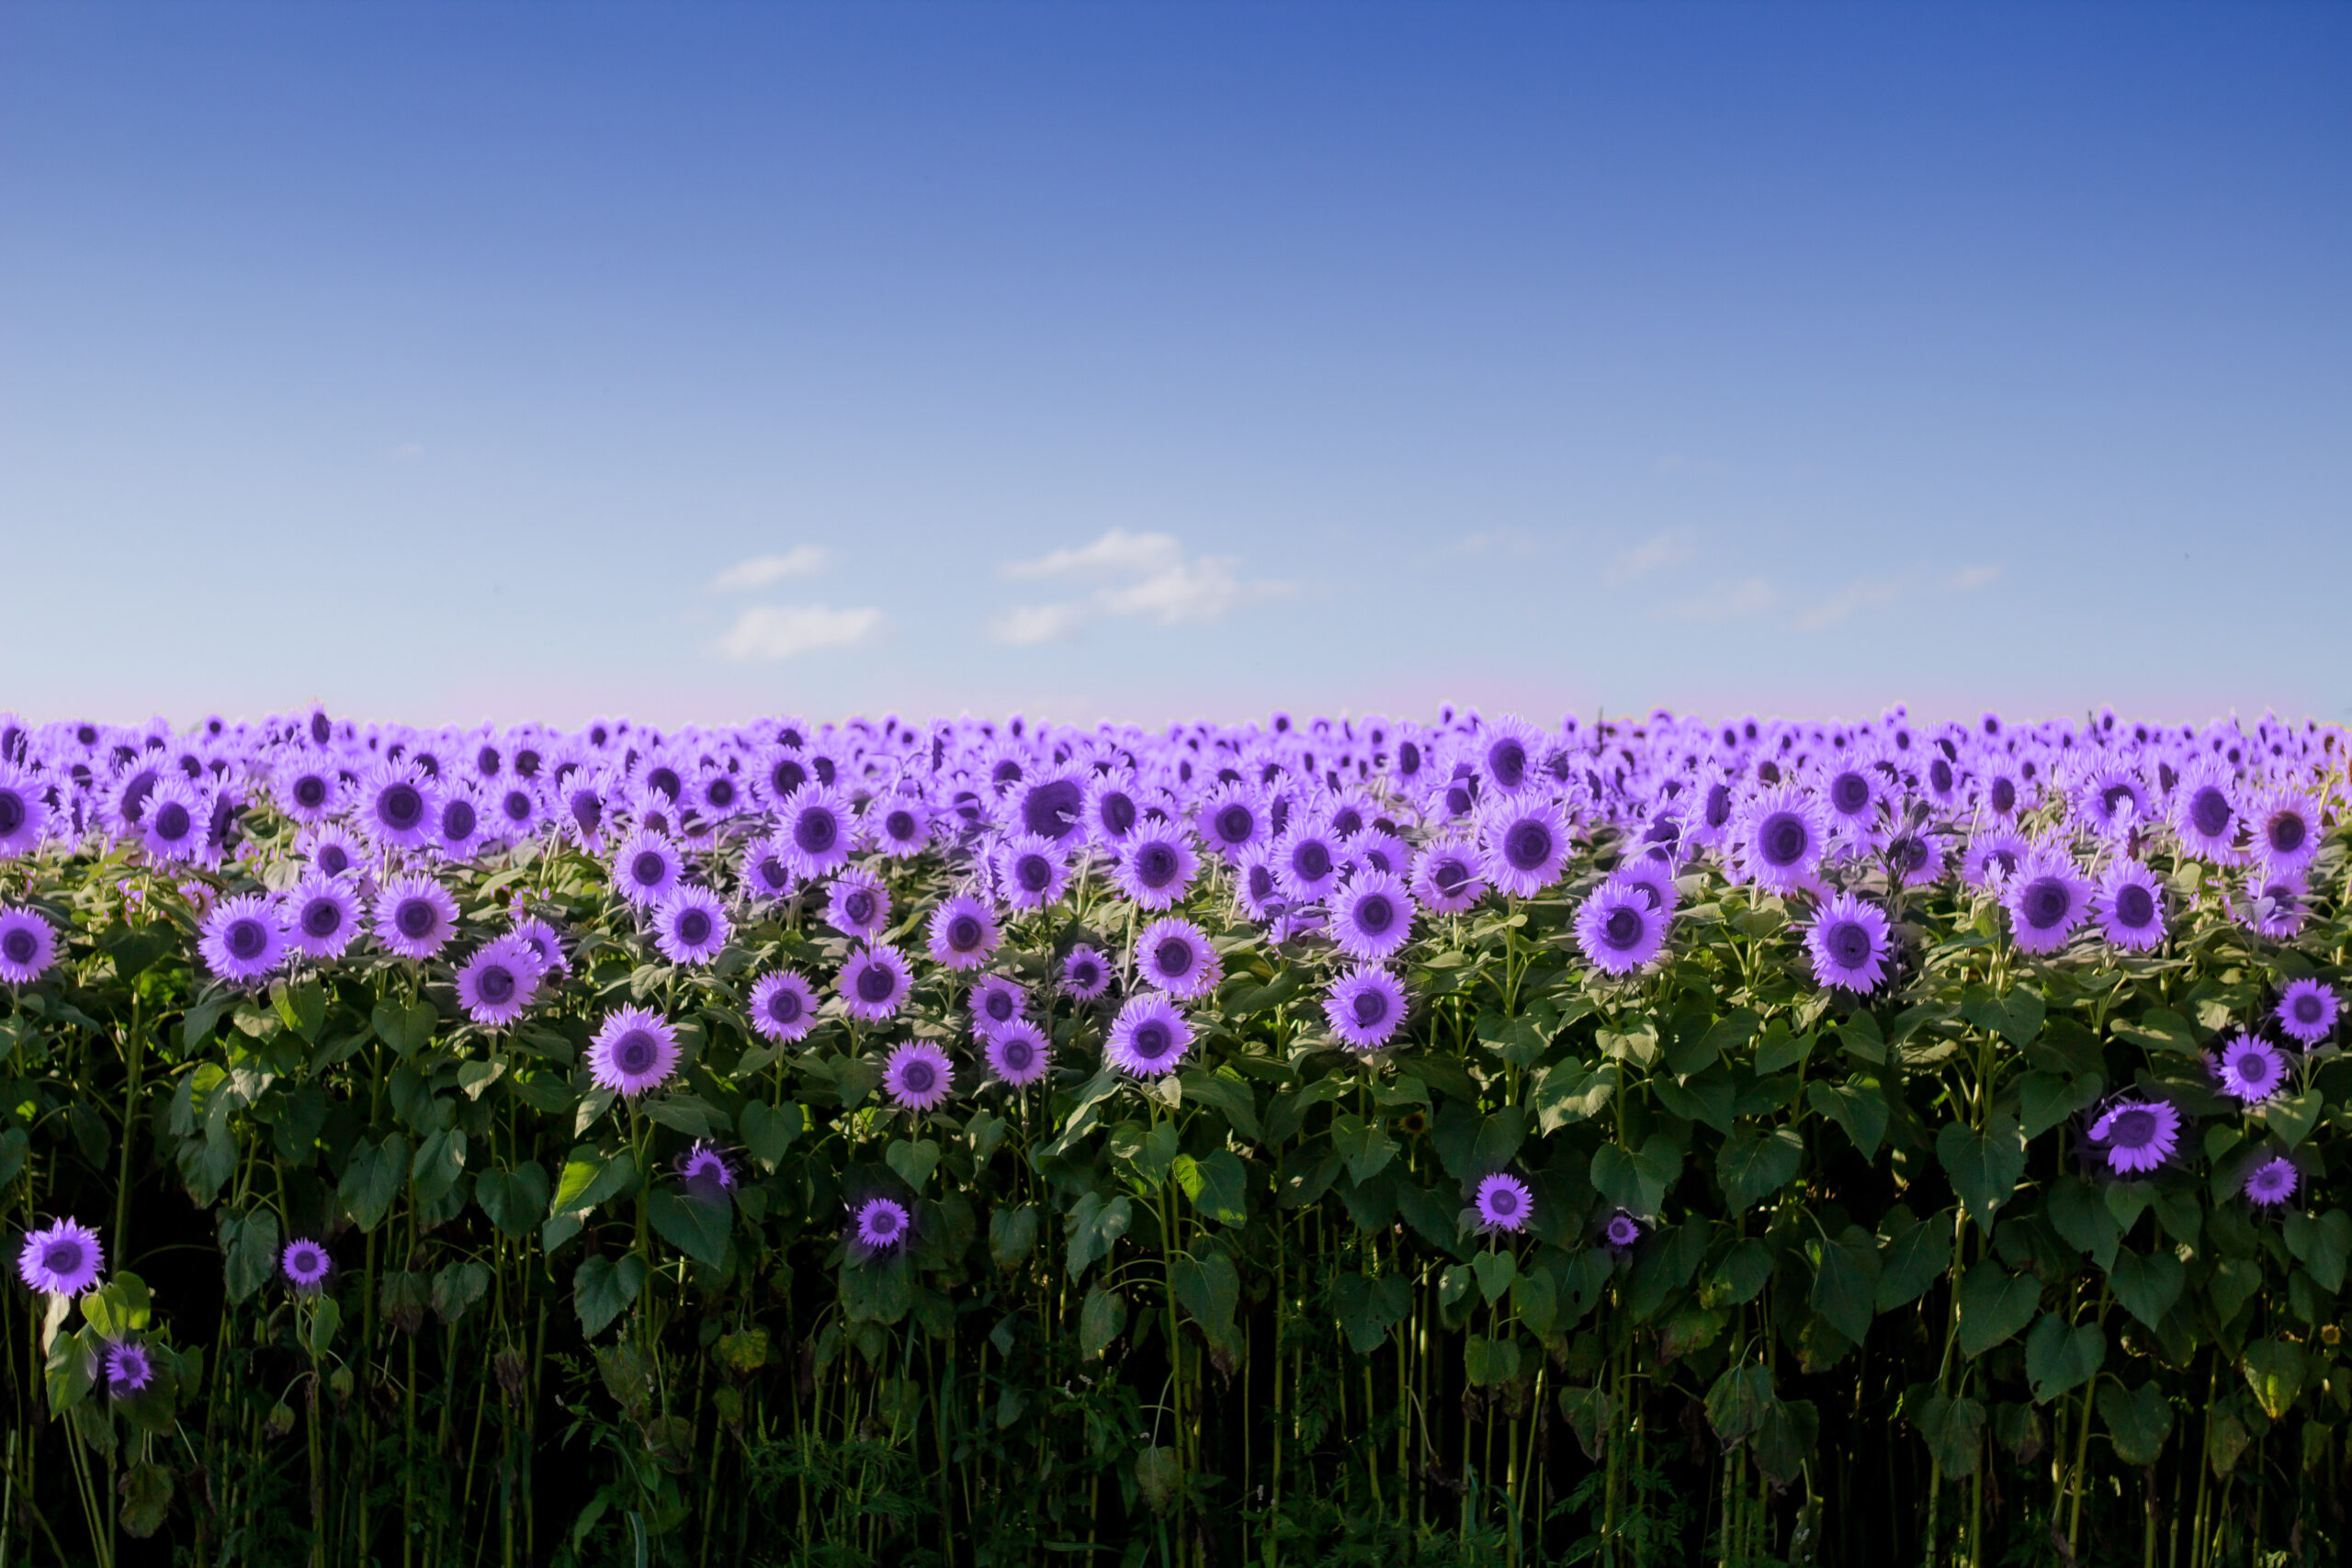 Thrive scaled - Every business deserves a chance to bloom